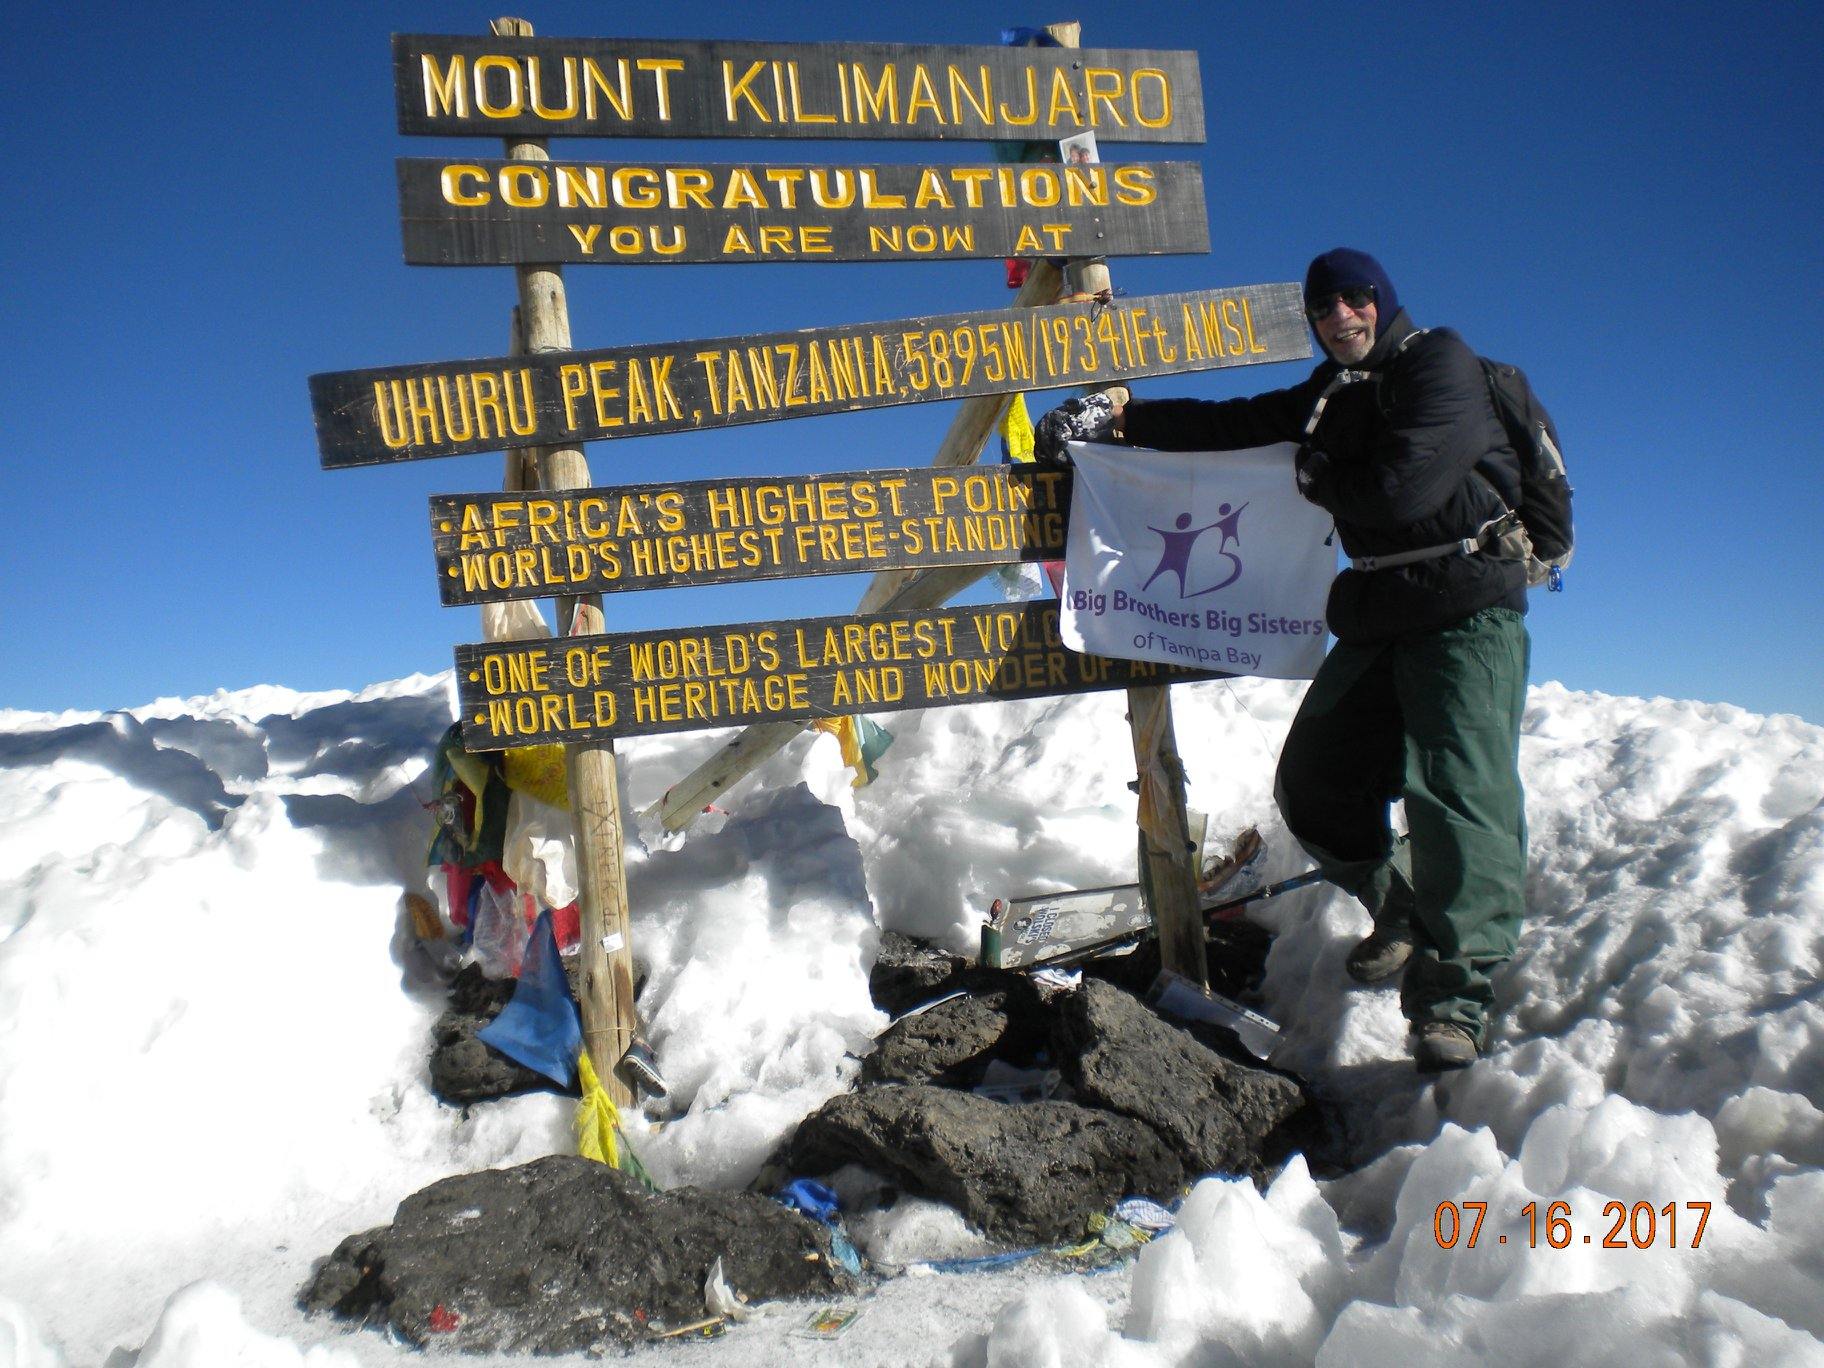 Big Brother Alan Cohen Climbed Mount Kilimanjaro for Big Brothers Big Sisters of Tampa Bay